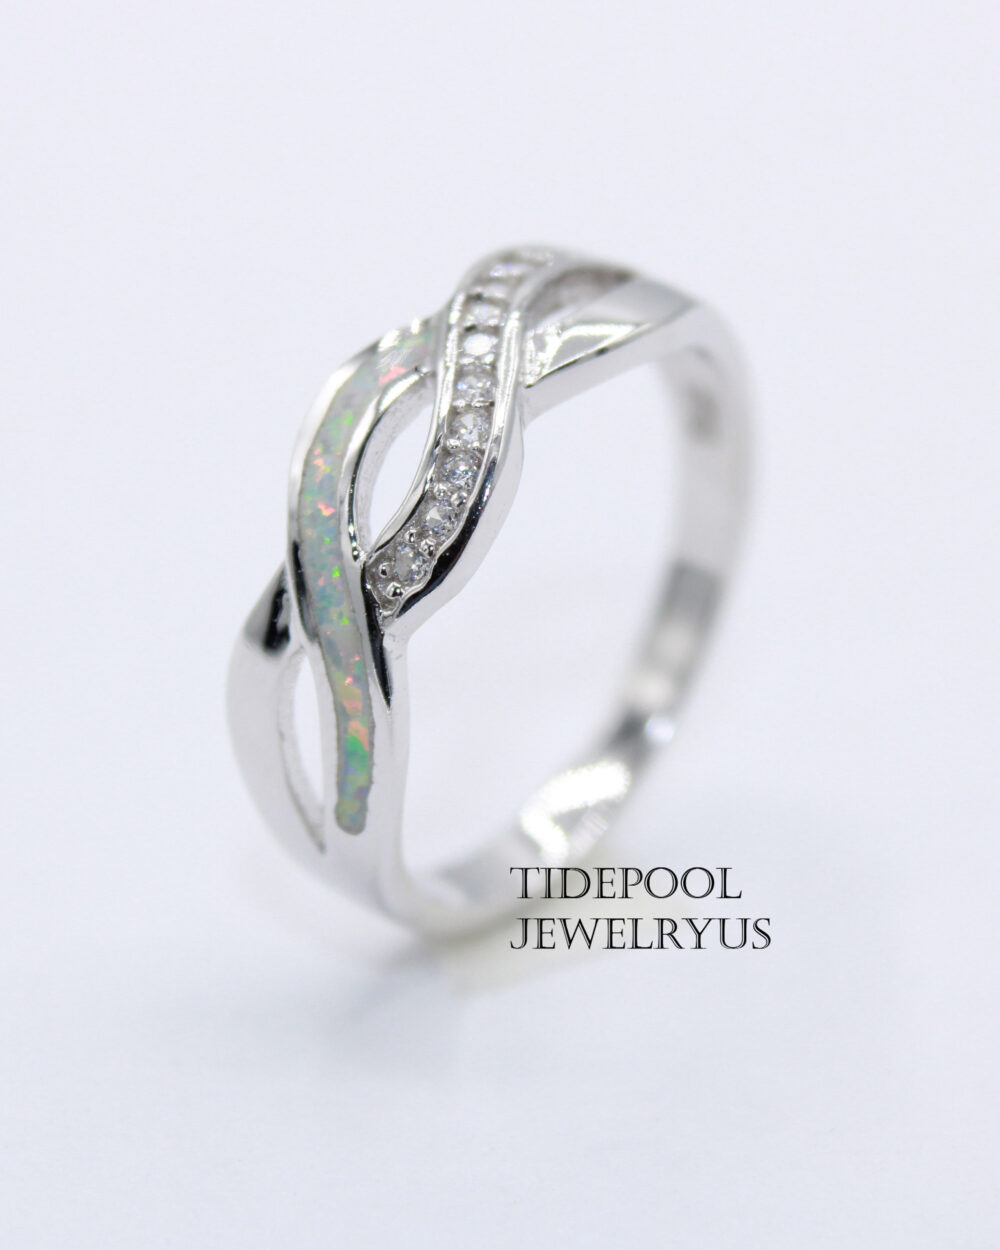 sterling Silver Opal Infinity Band Ring, White Infinity Love Intertwined Braid Gift For Her, Promise Ring